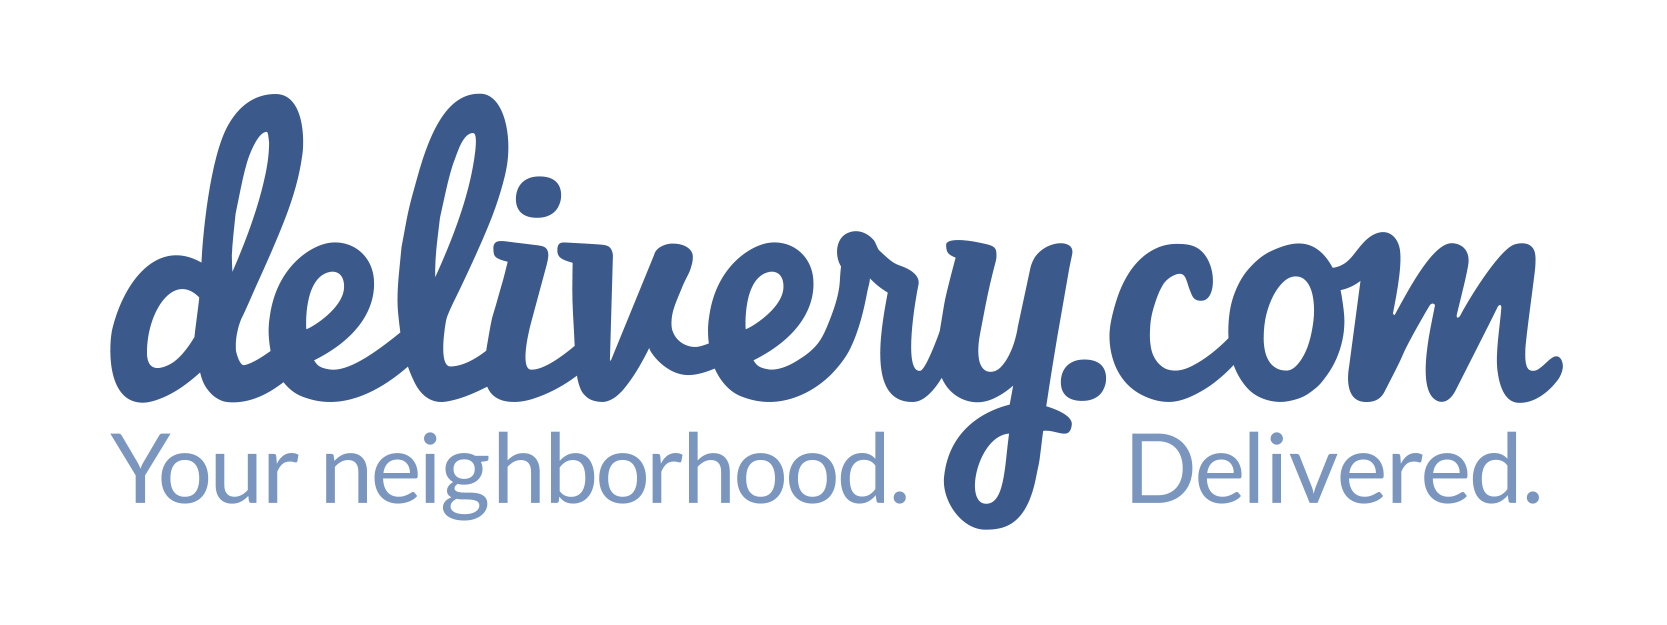 Delivery.com_Logo.png